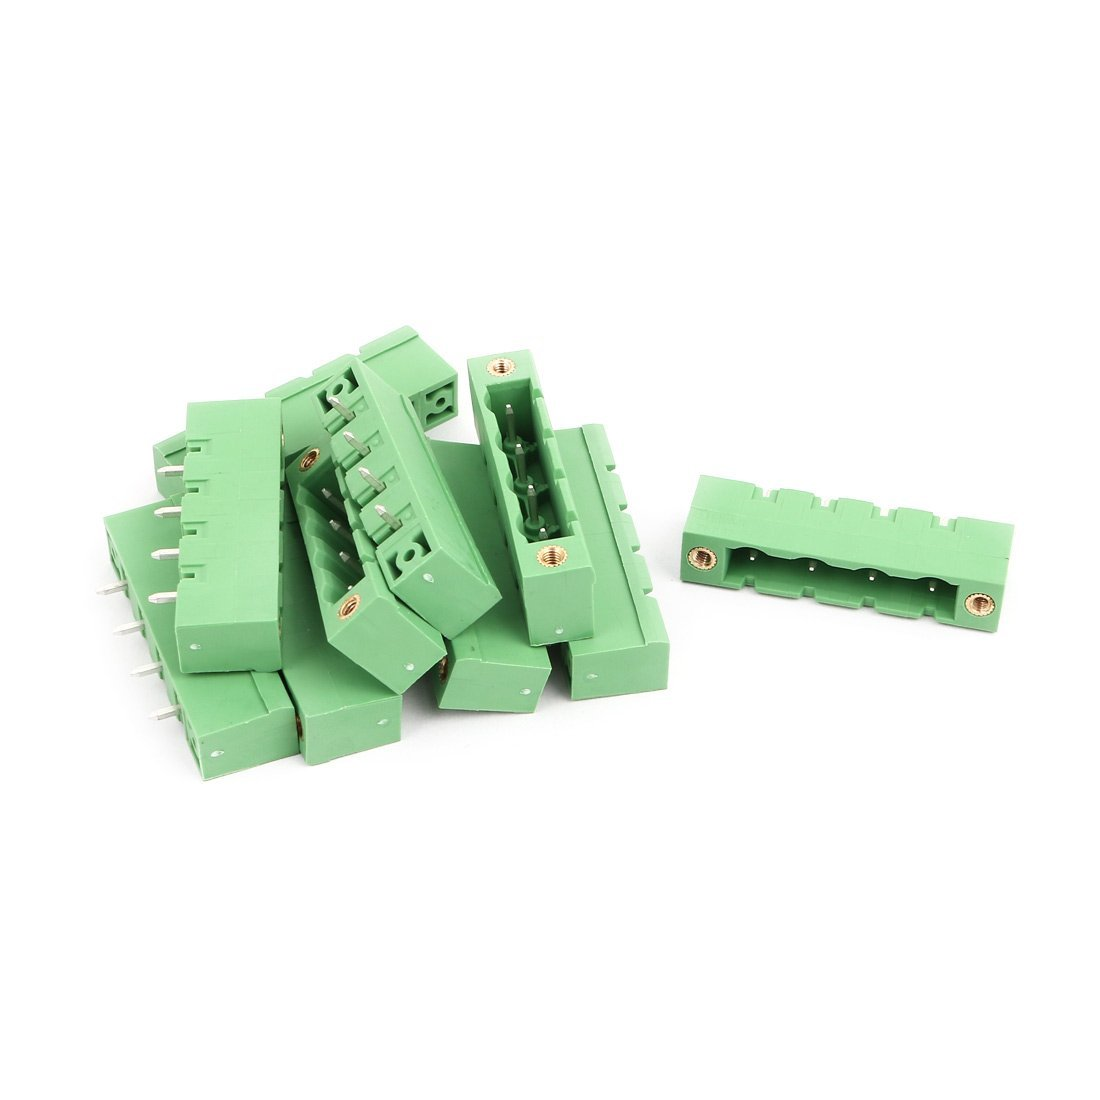 uxcell 10Pcs AC 300V 15A 7.62mm Pitch 4P Terminal Block Wire Connection for PCB Mounting